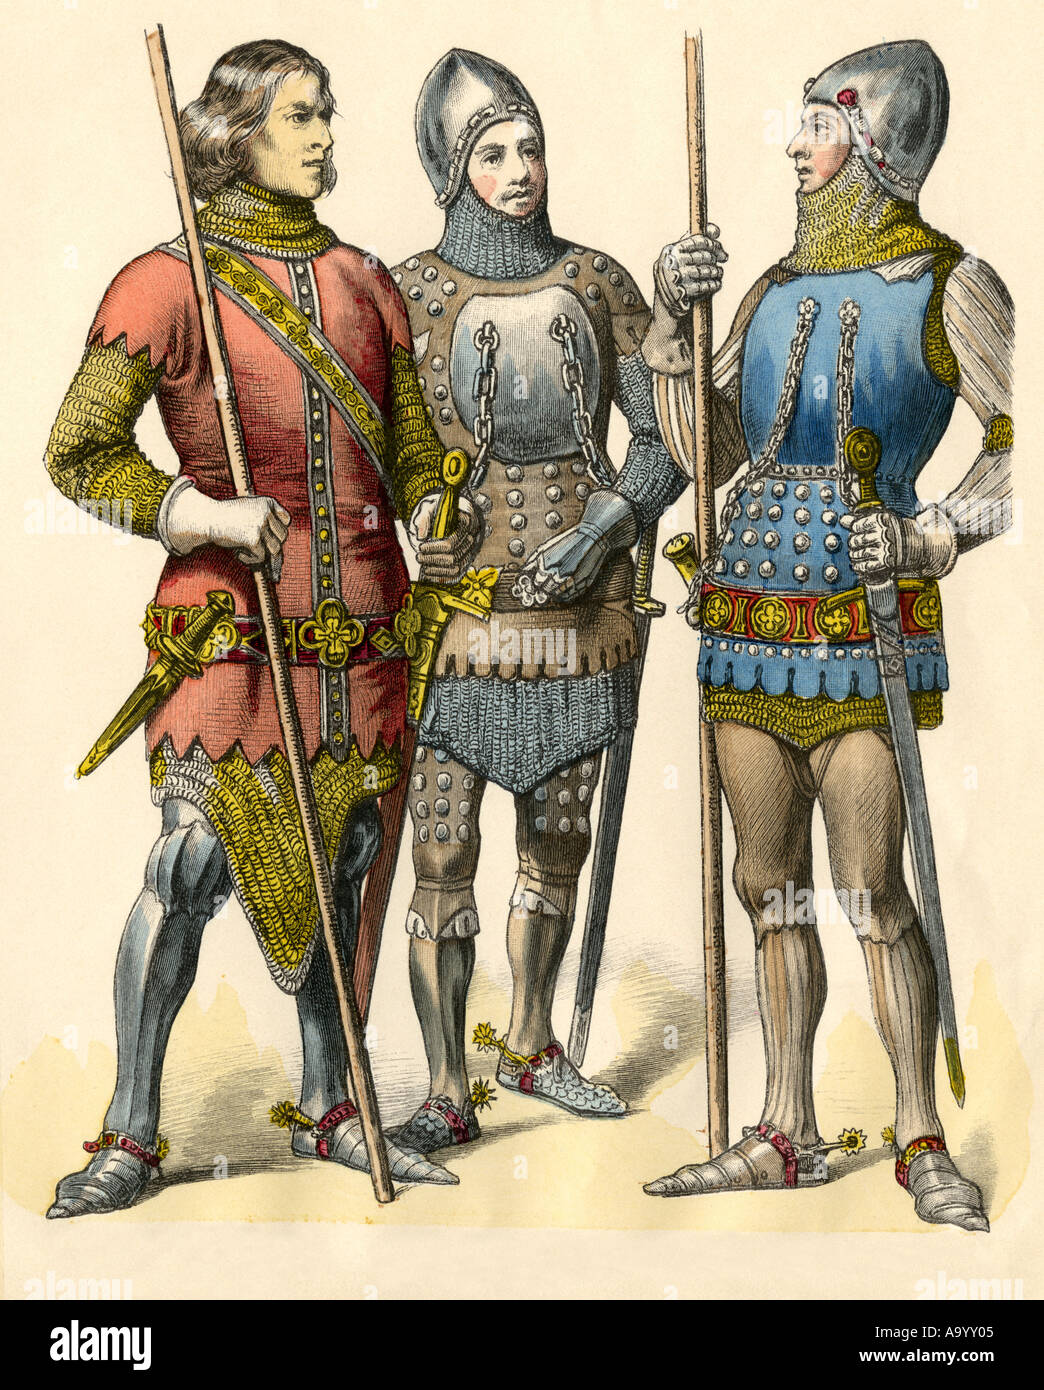 German knights in armor from 1300, 1315 and 1360. Hand-colored print - Stock Image